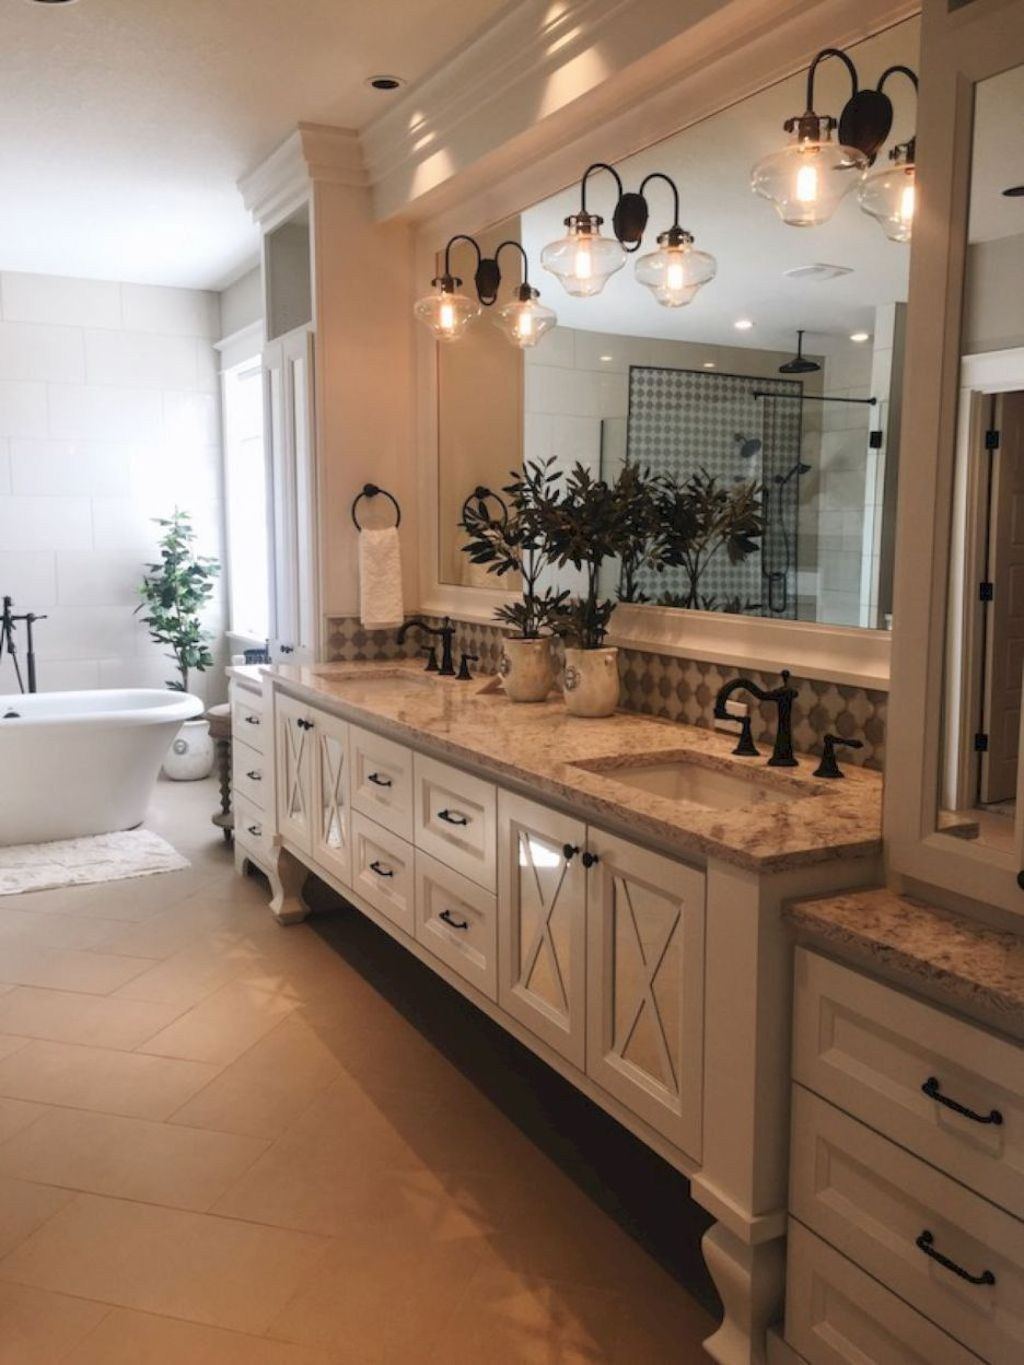 Bathroom Remodeling Ideas Before And After Master Bathroom Remodel Ideas Bathroom Re Rustic Master Bathroom Bathroom Remodel Master Bathroom Remodel Pictures